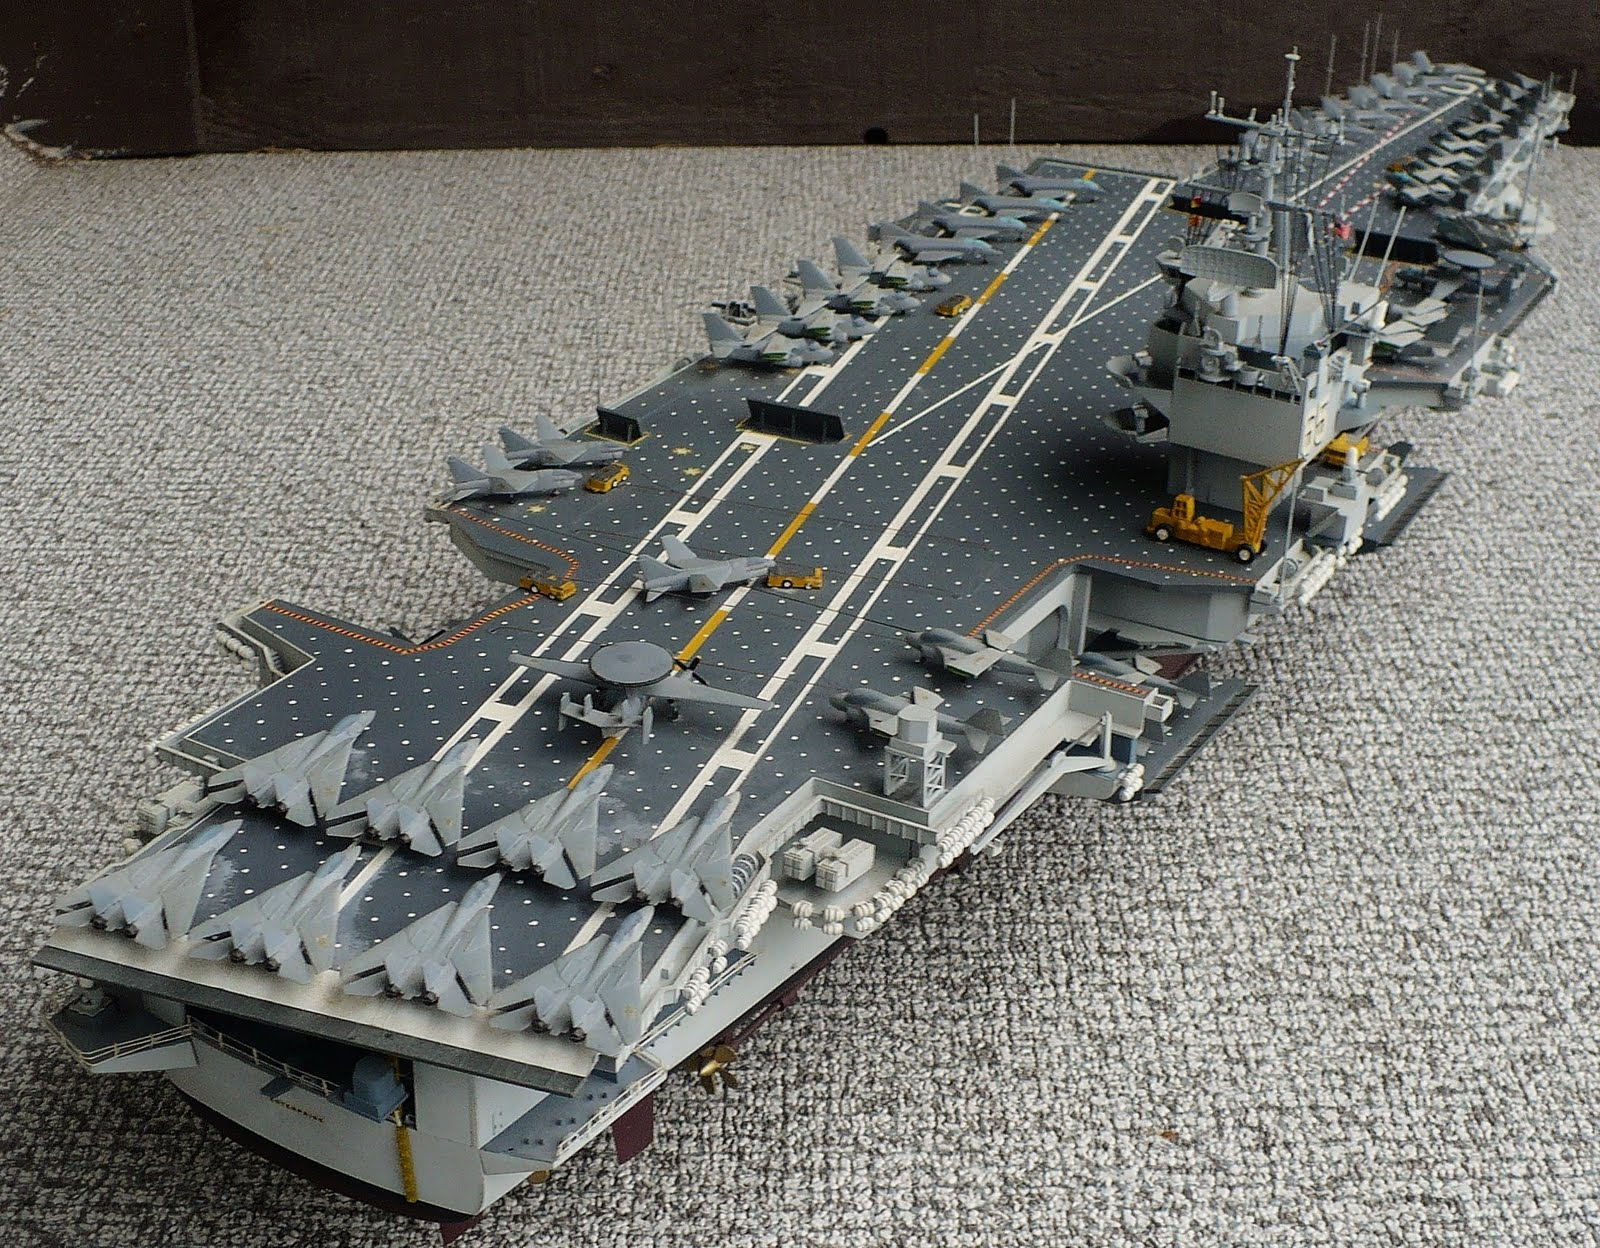 Aircraft carrier models large scale - Here Are Some Images Of Tamiya S 1 350 Scale Newport News Shipping Uss Enterprise Cvn 65 Aircraft Carrier Christened In 1960 And Still In Service To This